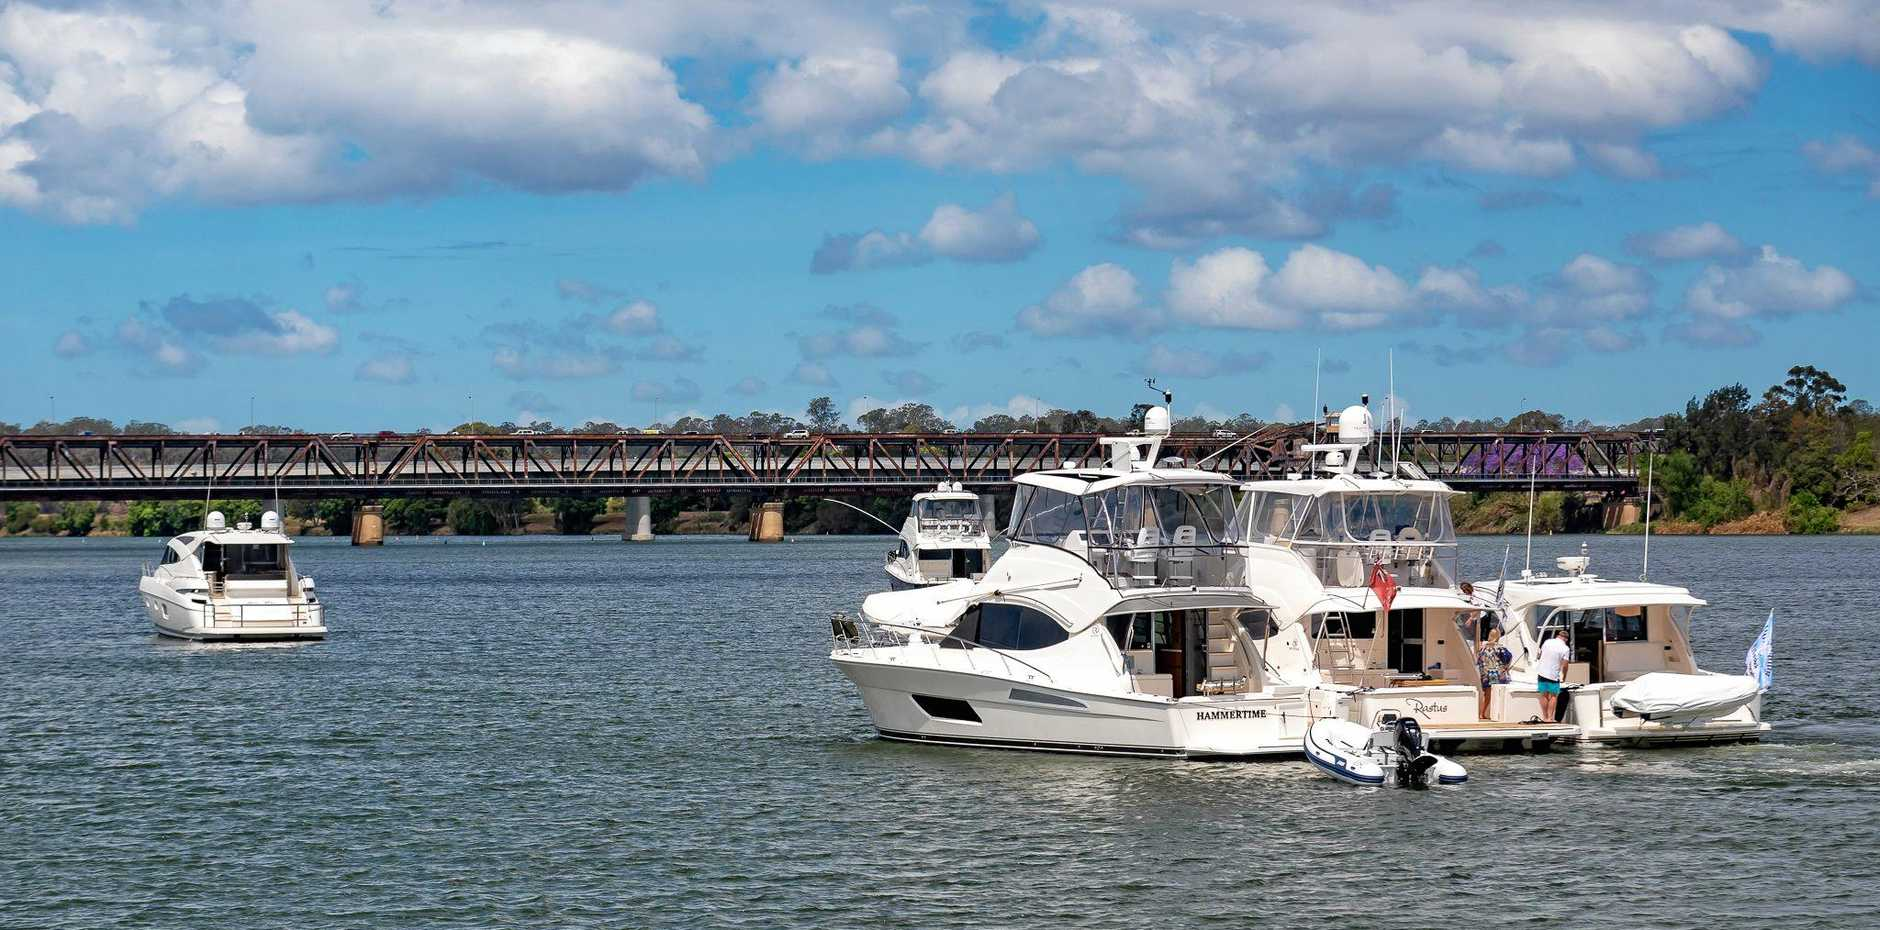 Riviera craft in the Clarence River this week for the Jacaranda Festival